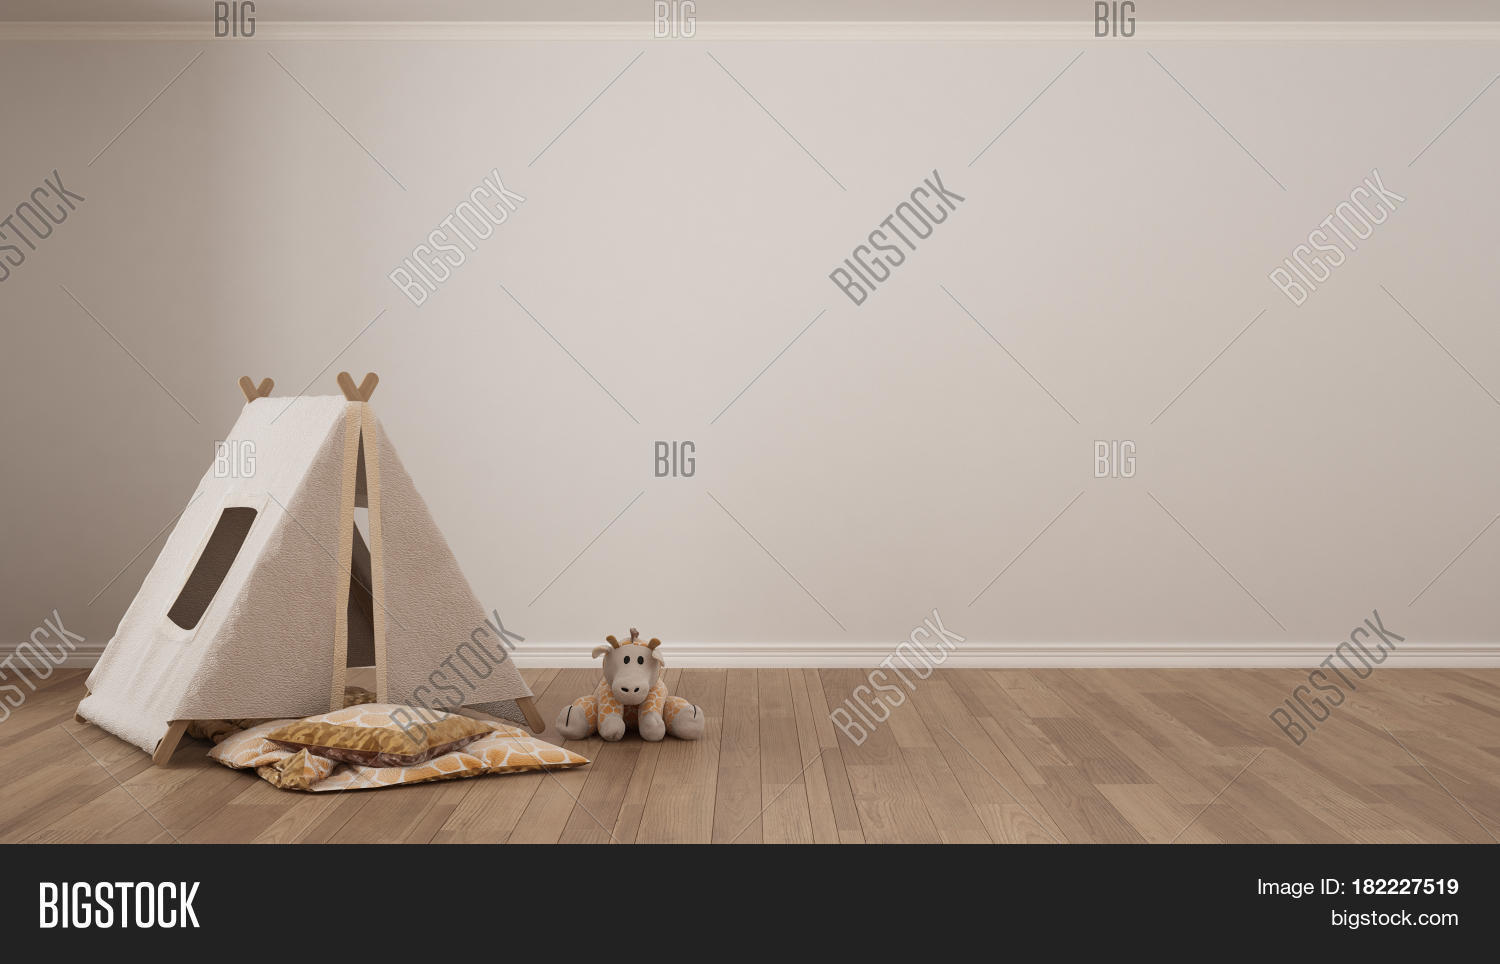 Kids minimalist white background with child tent blanket pillow and toy on parquet flooring child room & Kids Minimalist White Background Image u0026 Photo | Bigstock